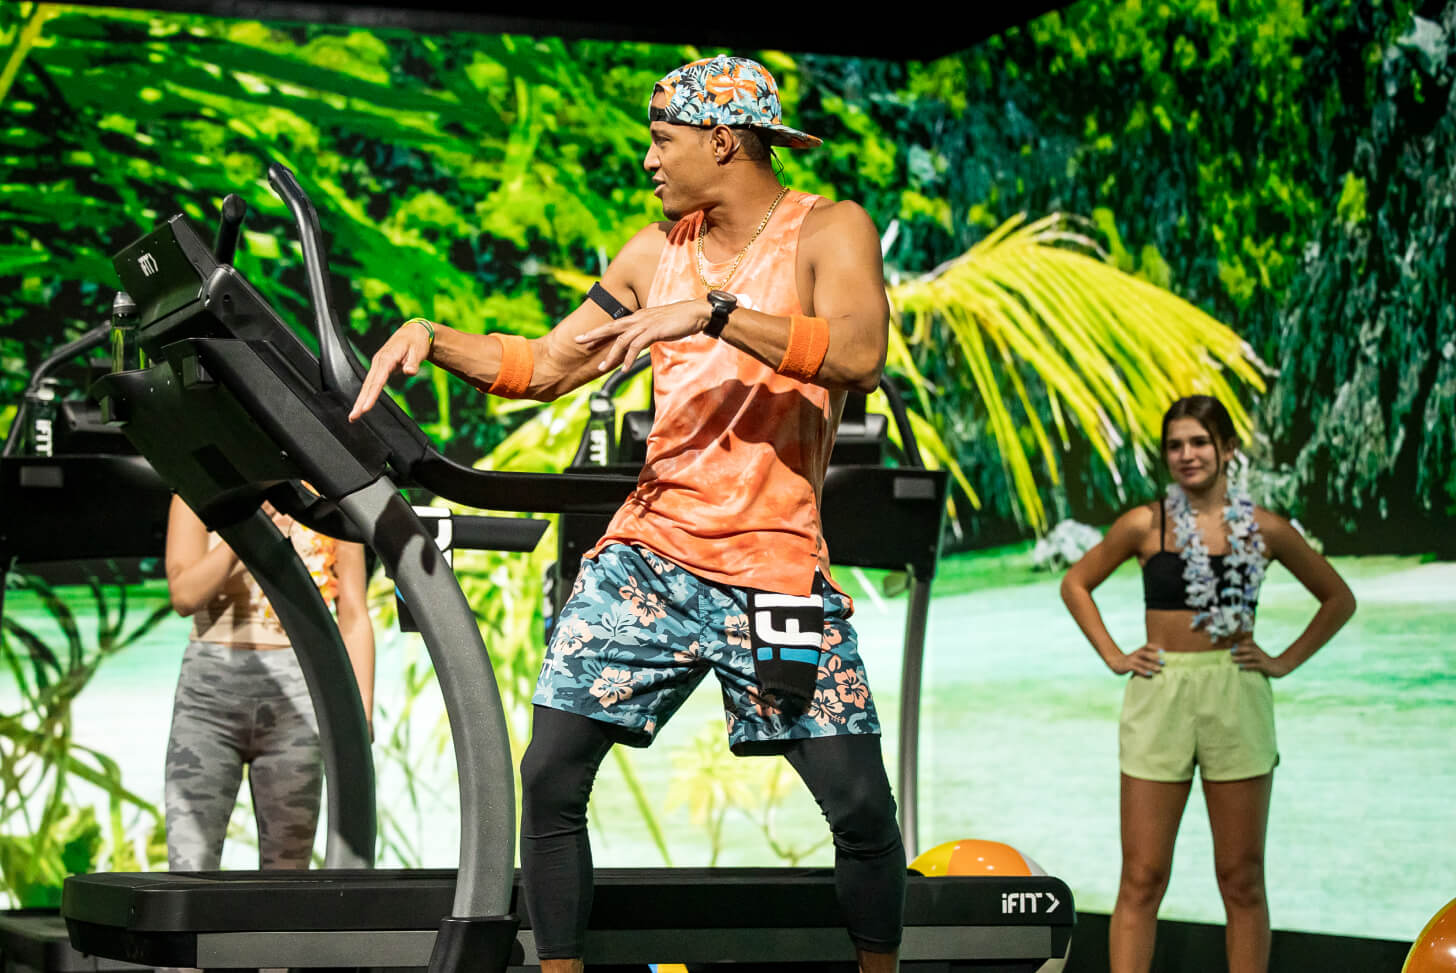 iFIT Trainer Jonnie Gale coaches a treadmill workout